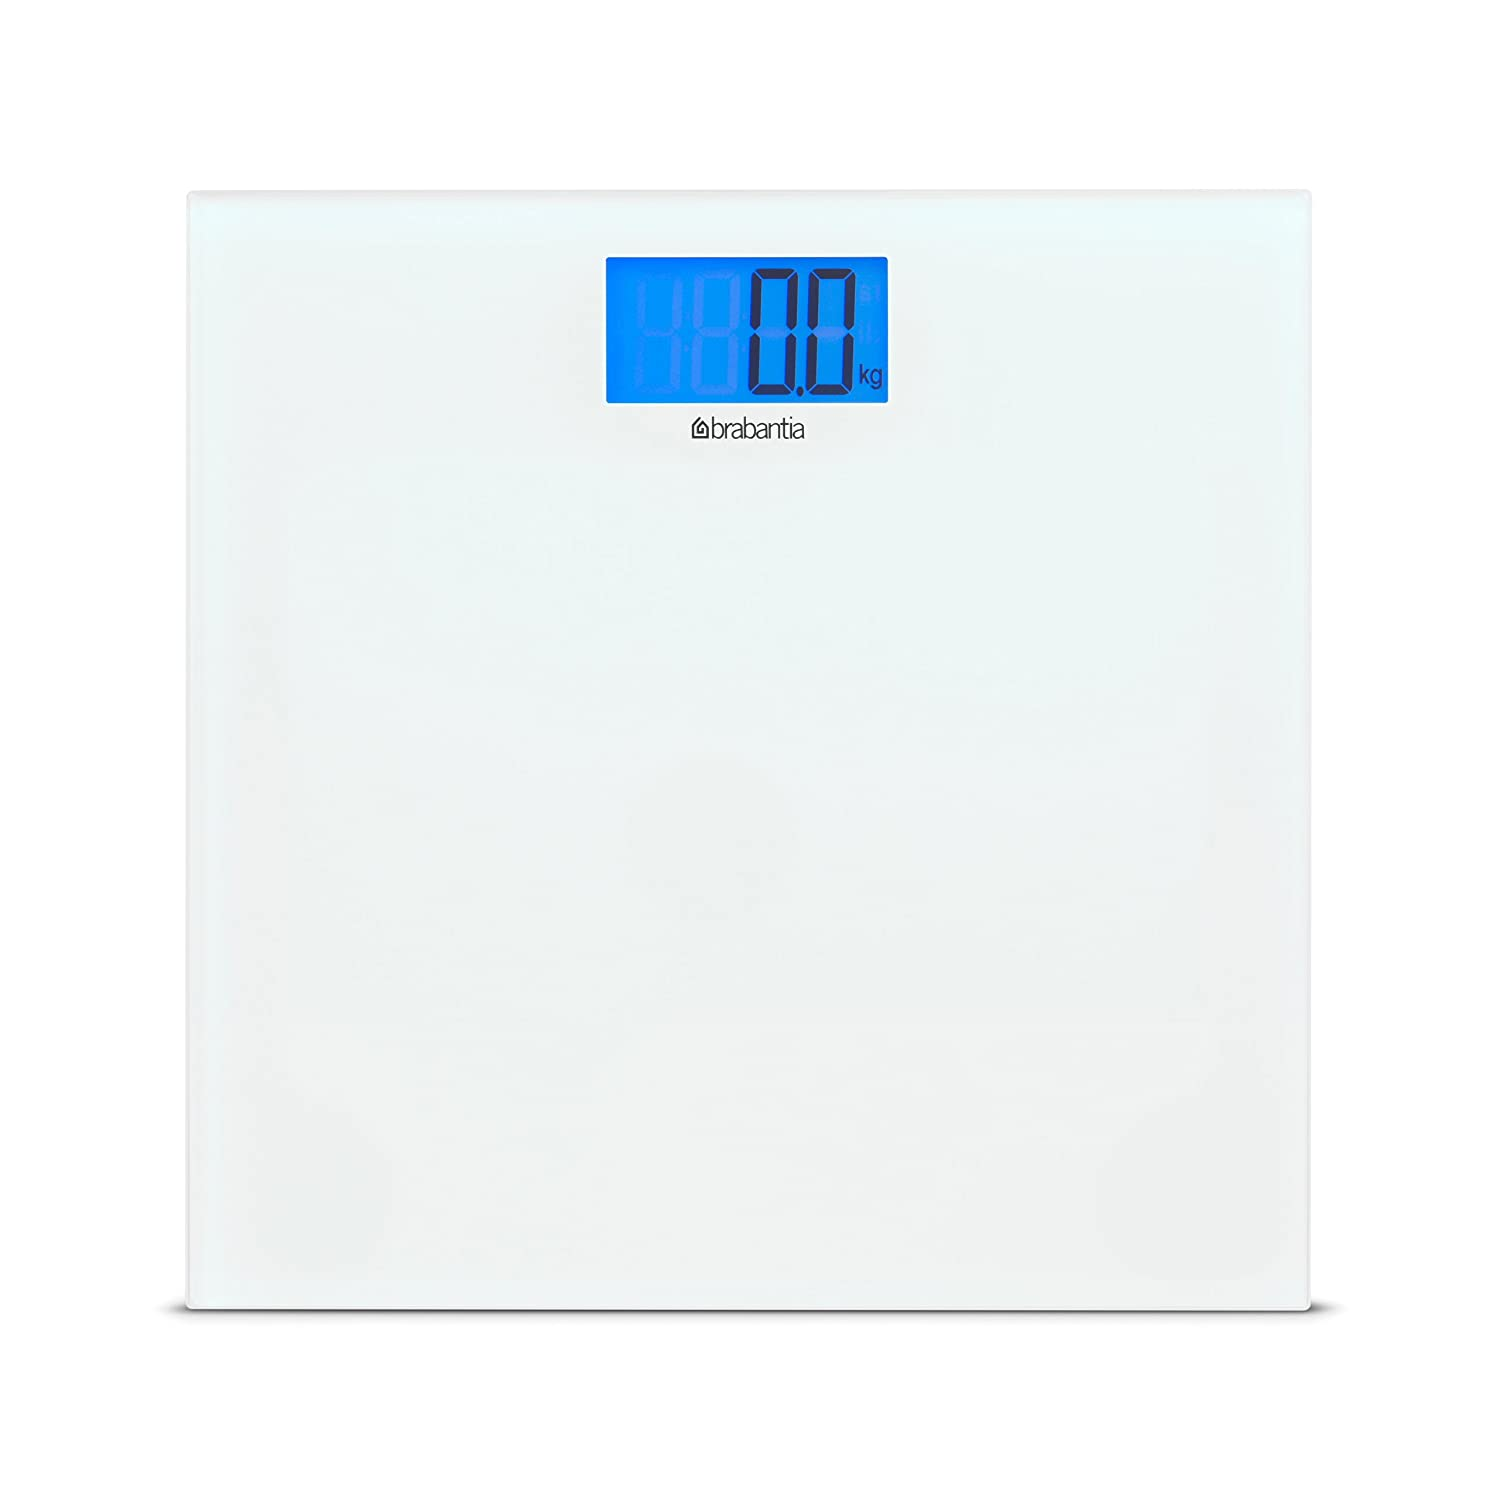 Batteries for bathroom scales - Batteries For Bathroom Scales 20